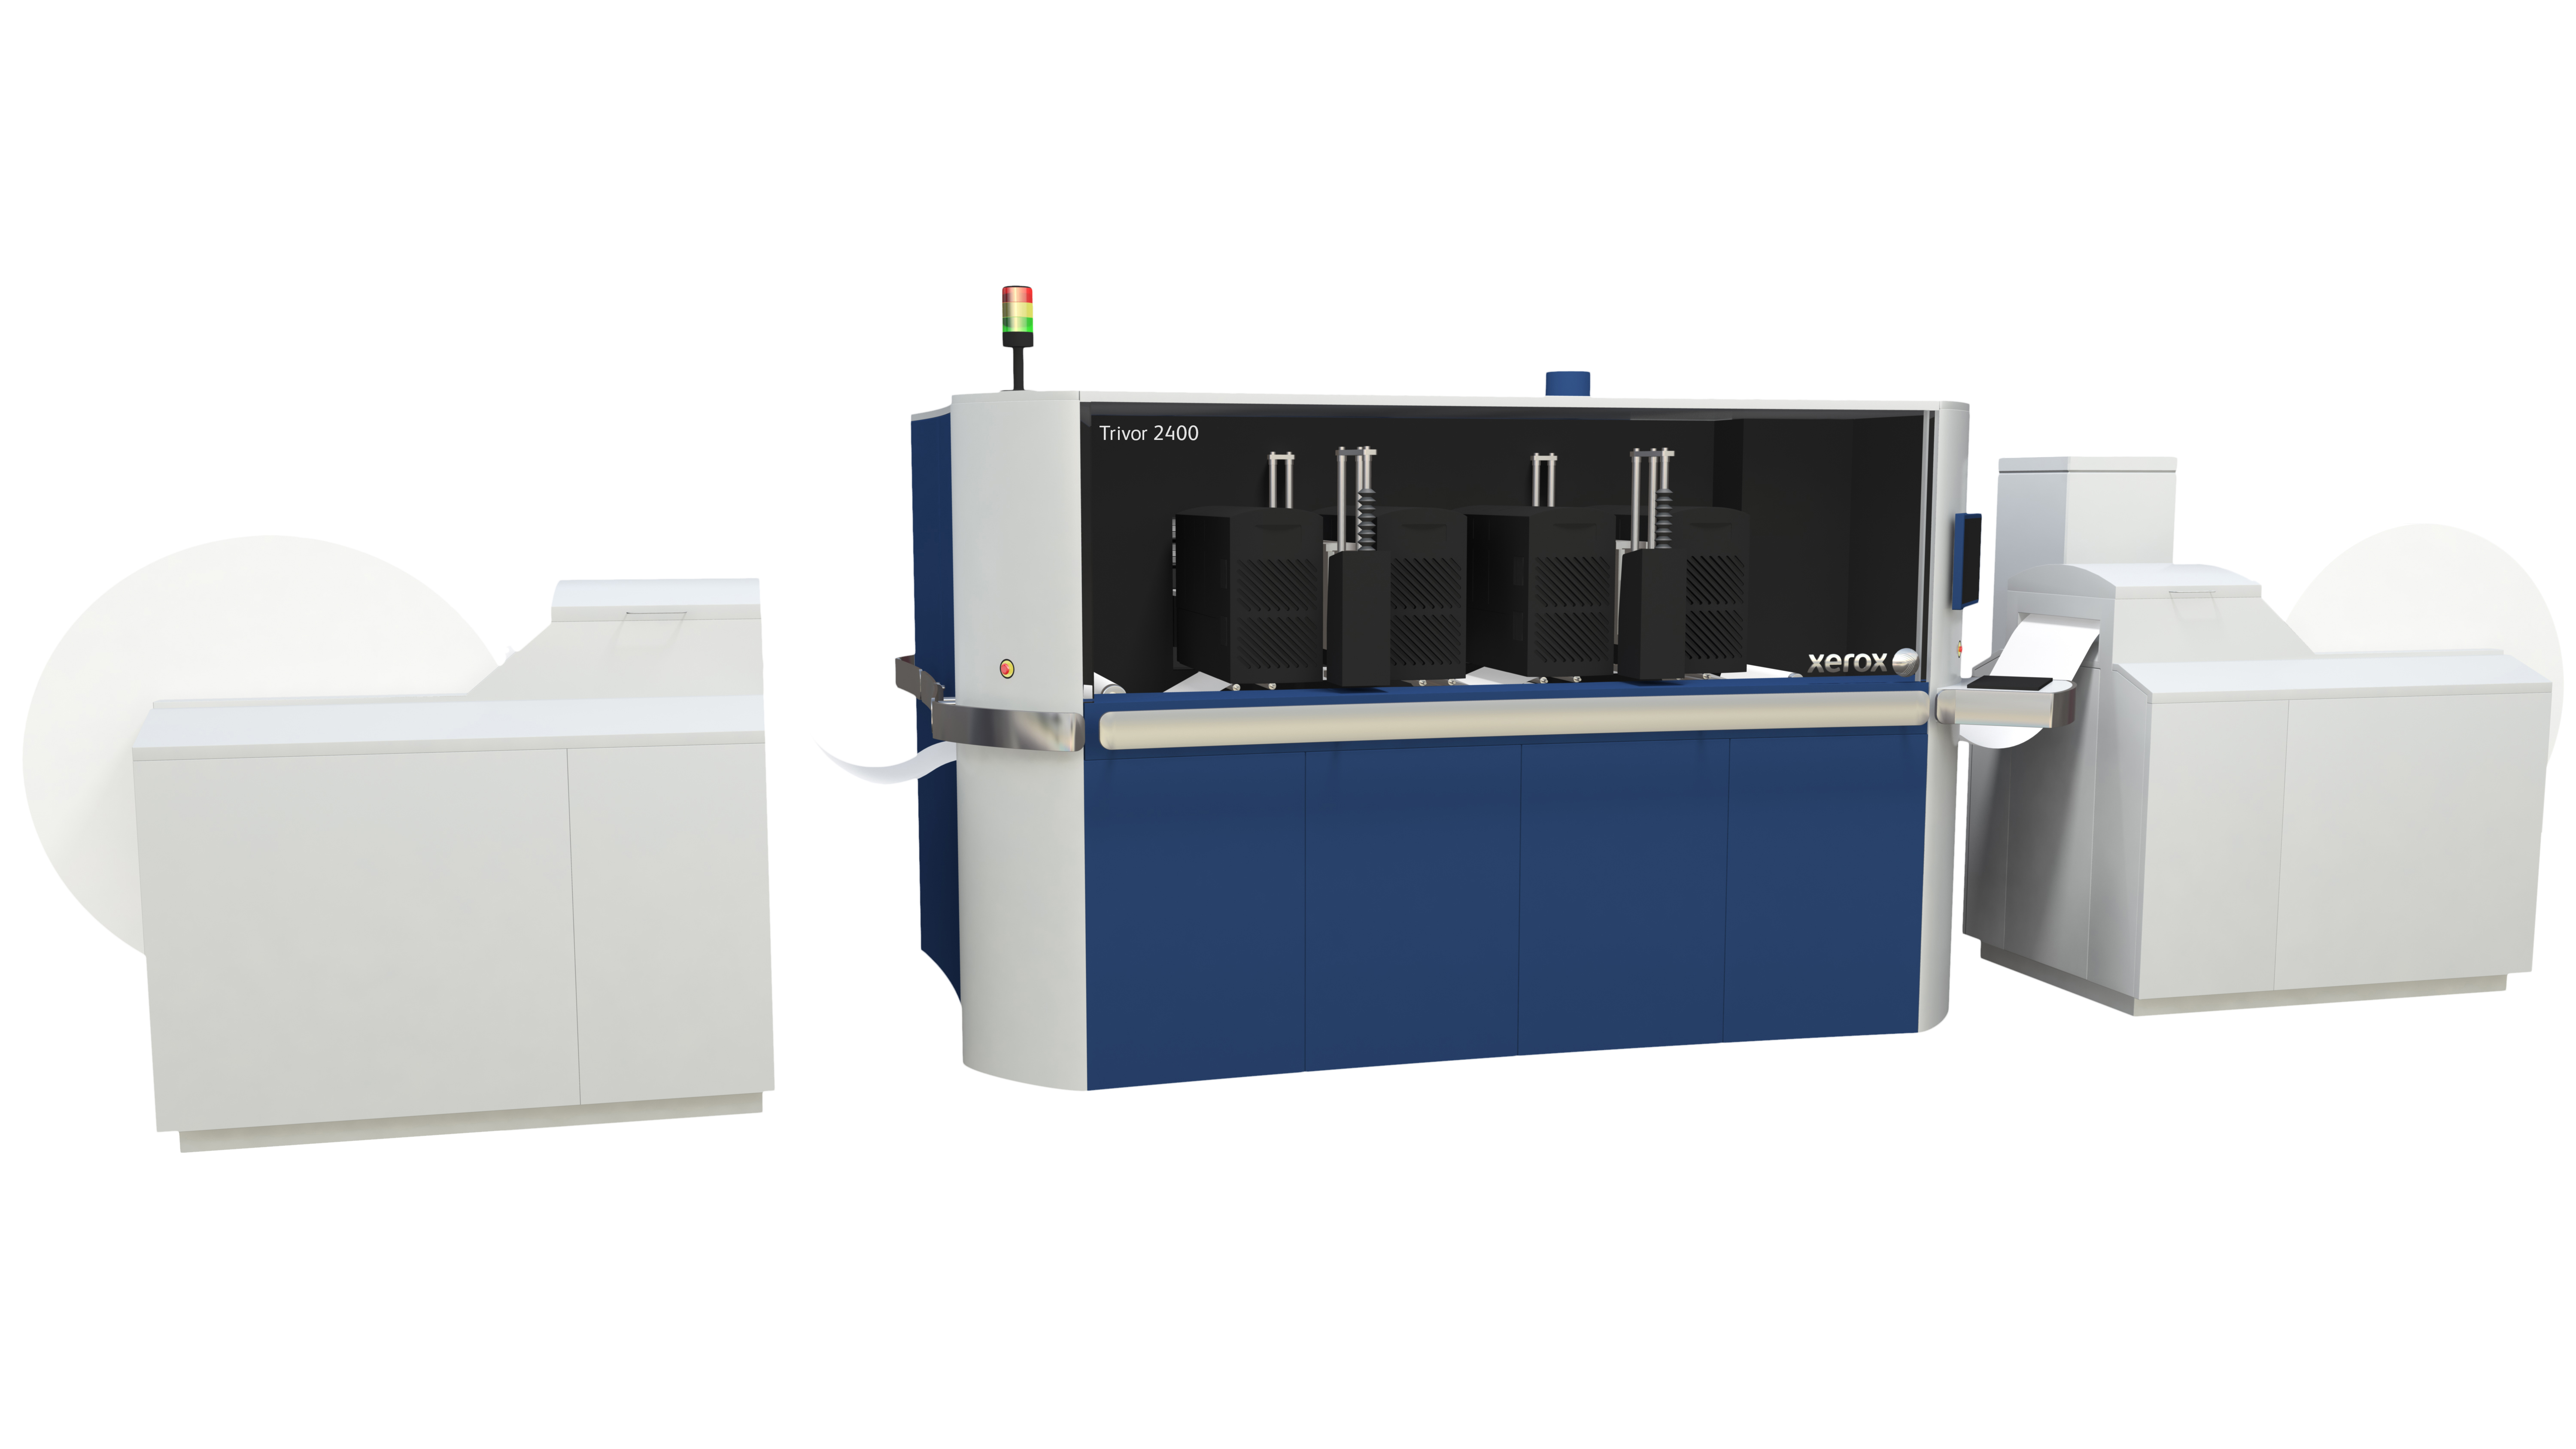 The Xerox Trivor 2400 Inkjet Press is a new high-speed, continuous feed inkjet press. The press enables printers to grow and upgrade capacity with ease and offers the speed, image quality and automation capabilities needed for growth in key application segments. A new print server developed in partnership with EFI, the Xerox IJ Print Server powered by Fiery, will handle multiple data streams for various application types.